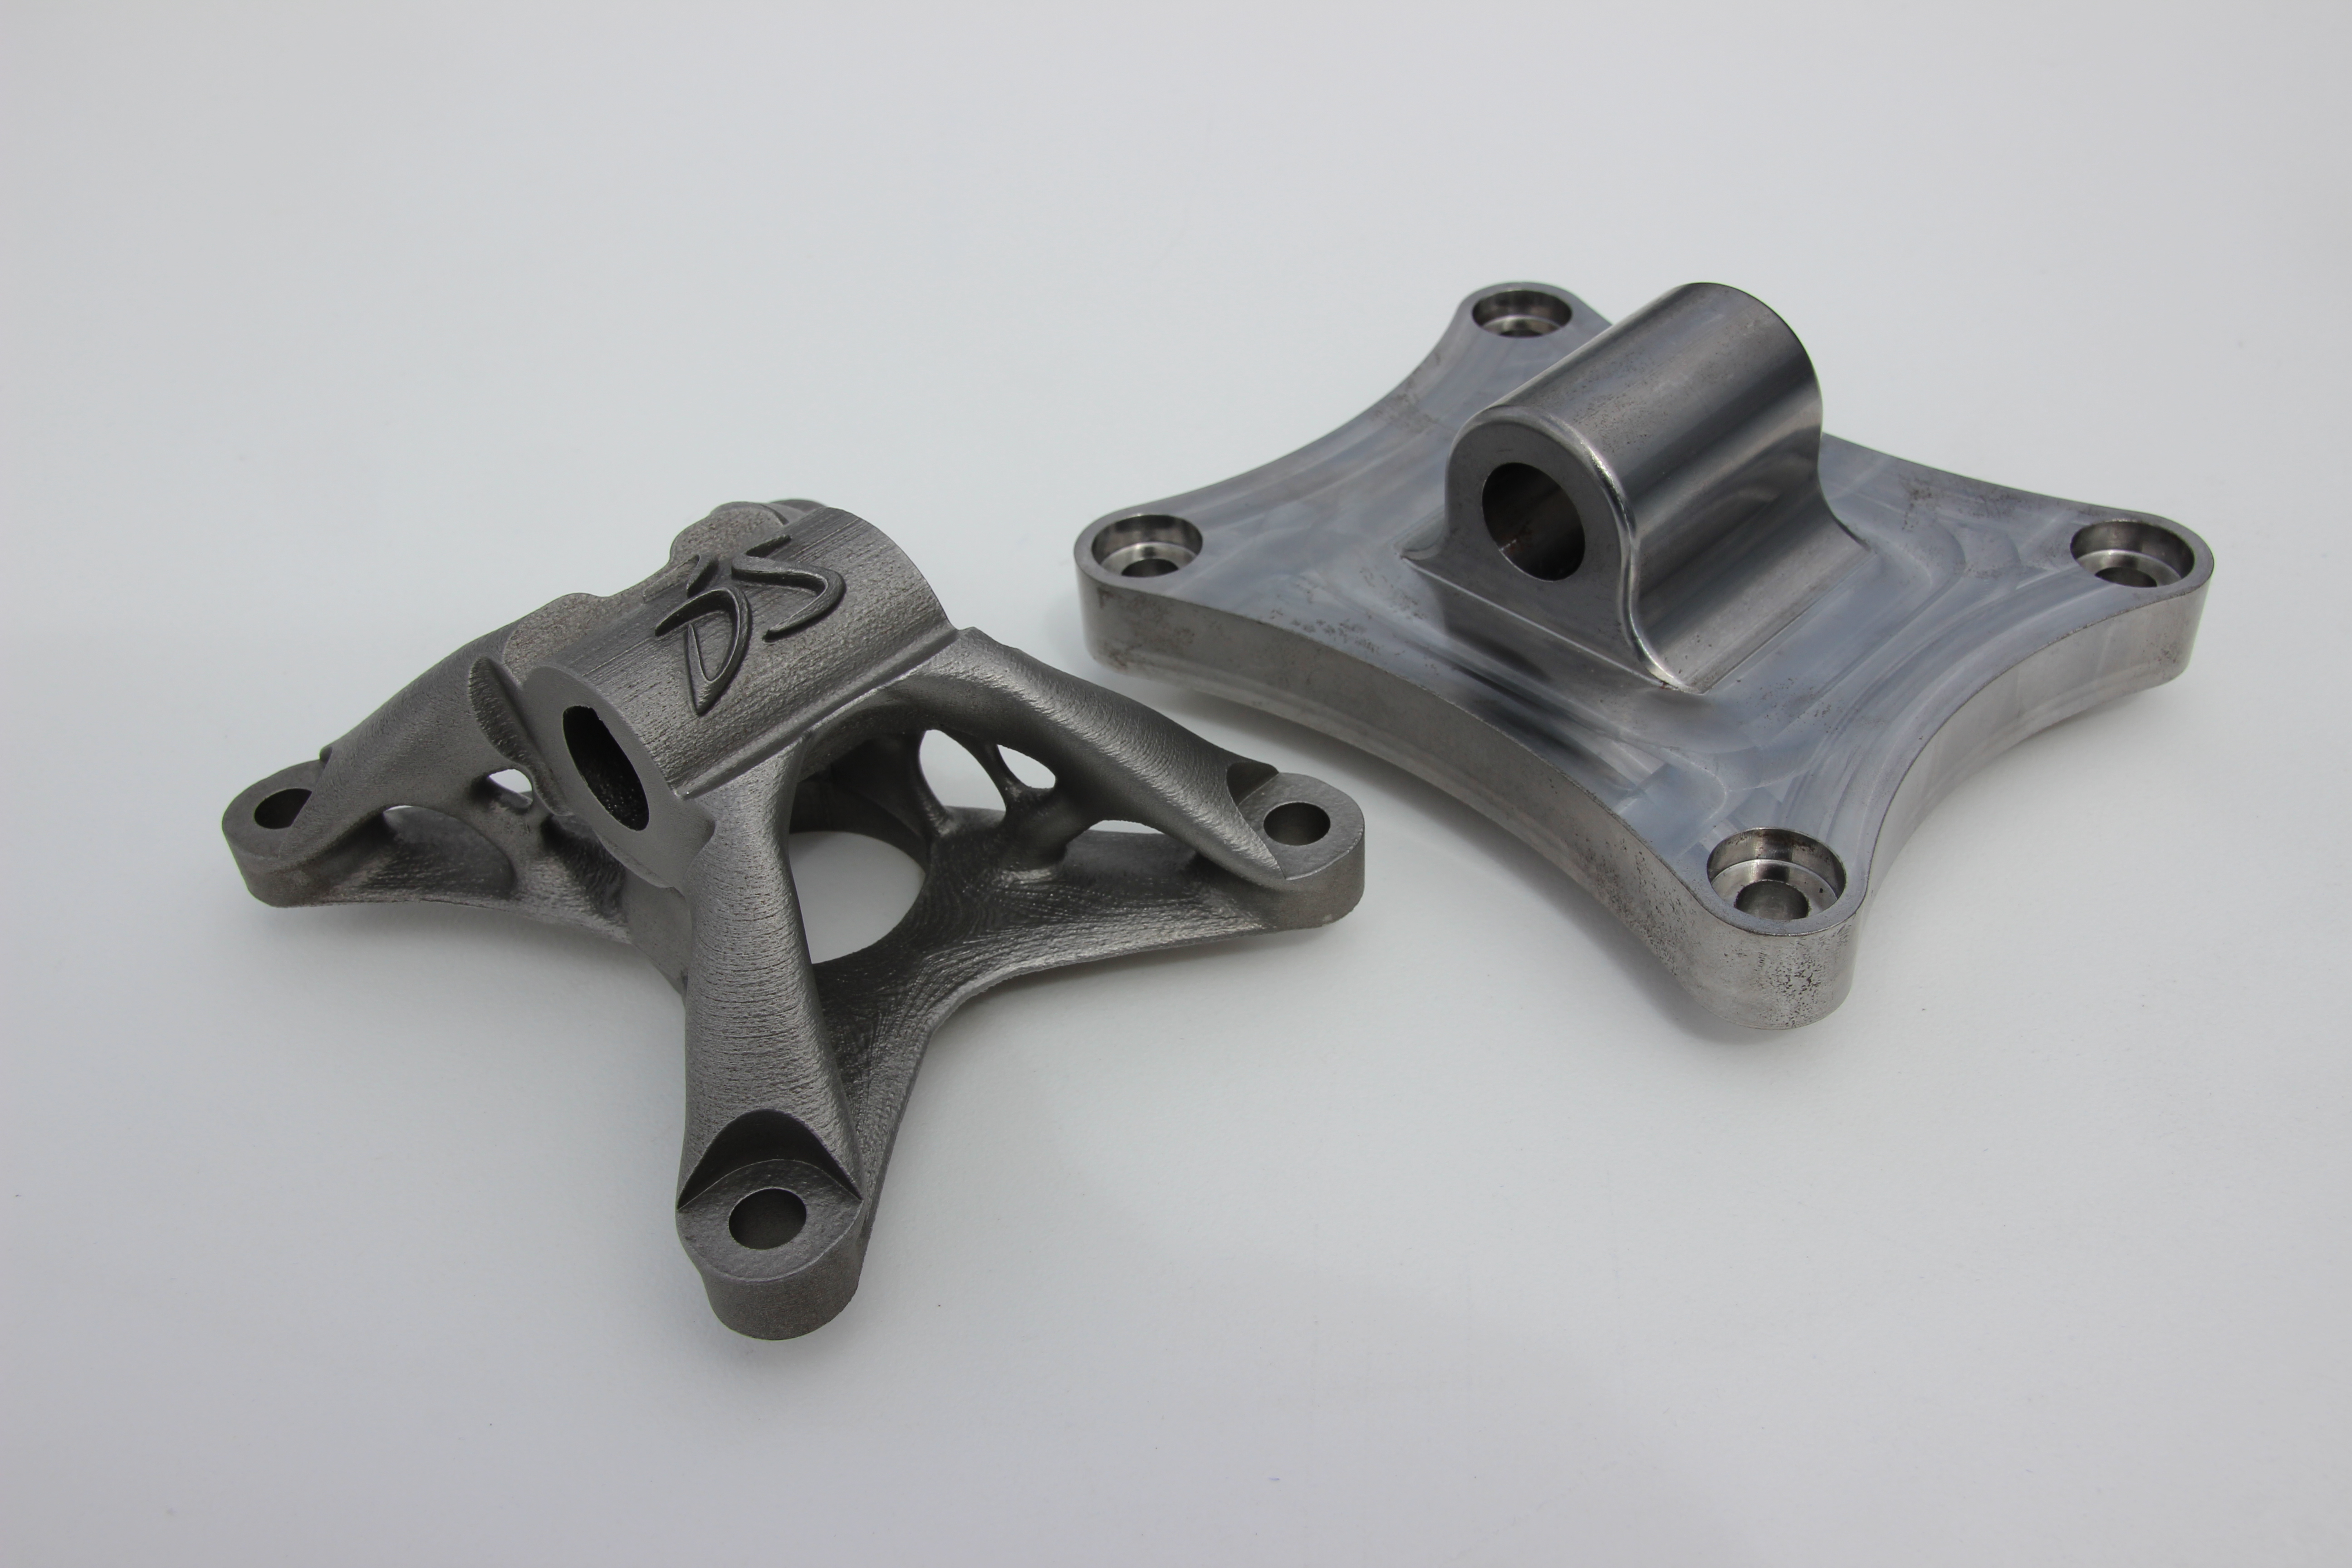 Additive manufacturing enables design without constraint